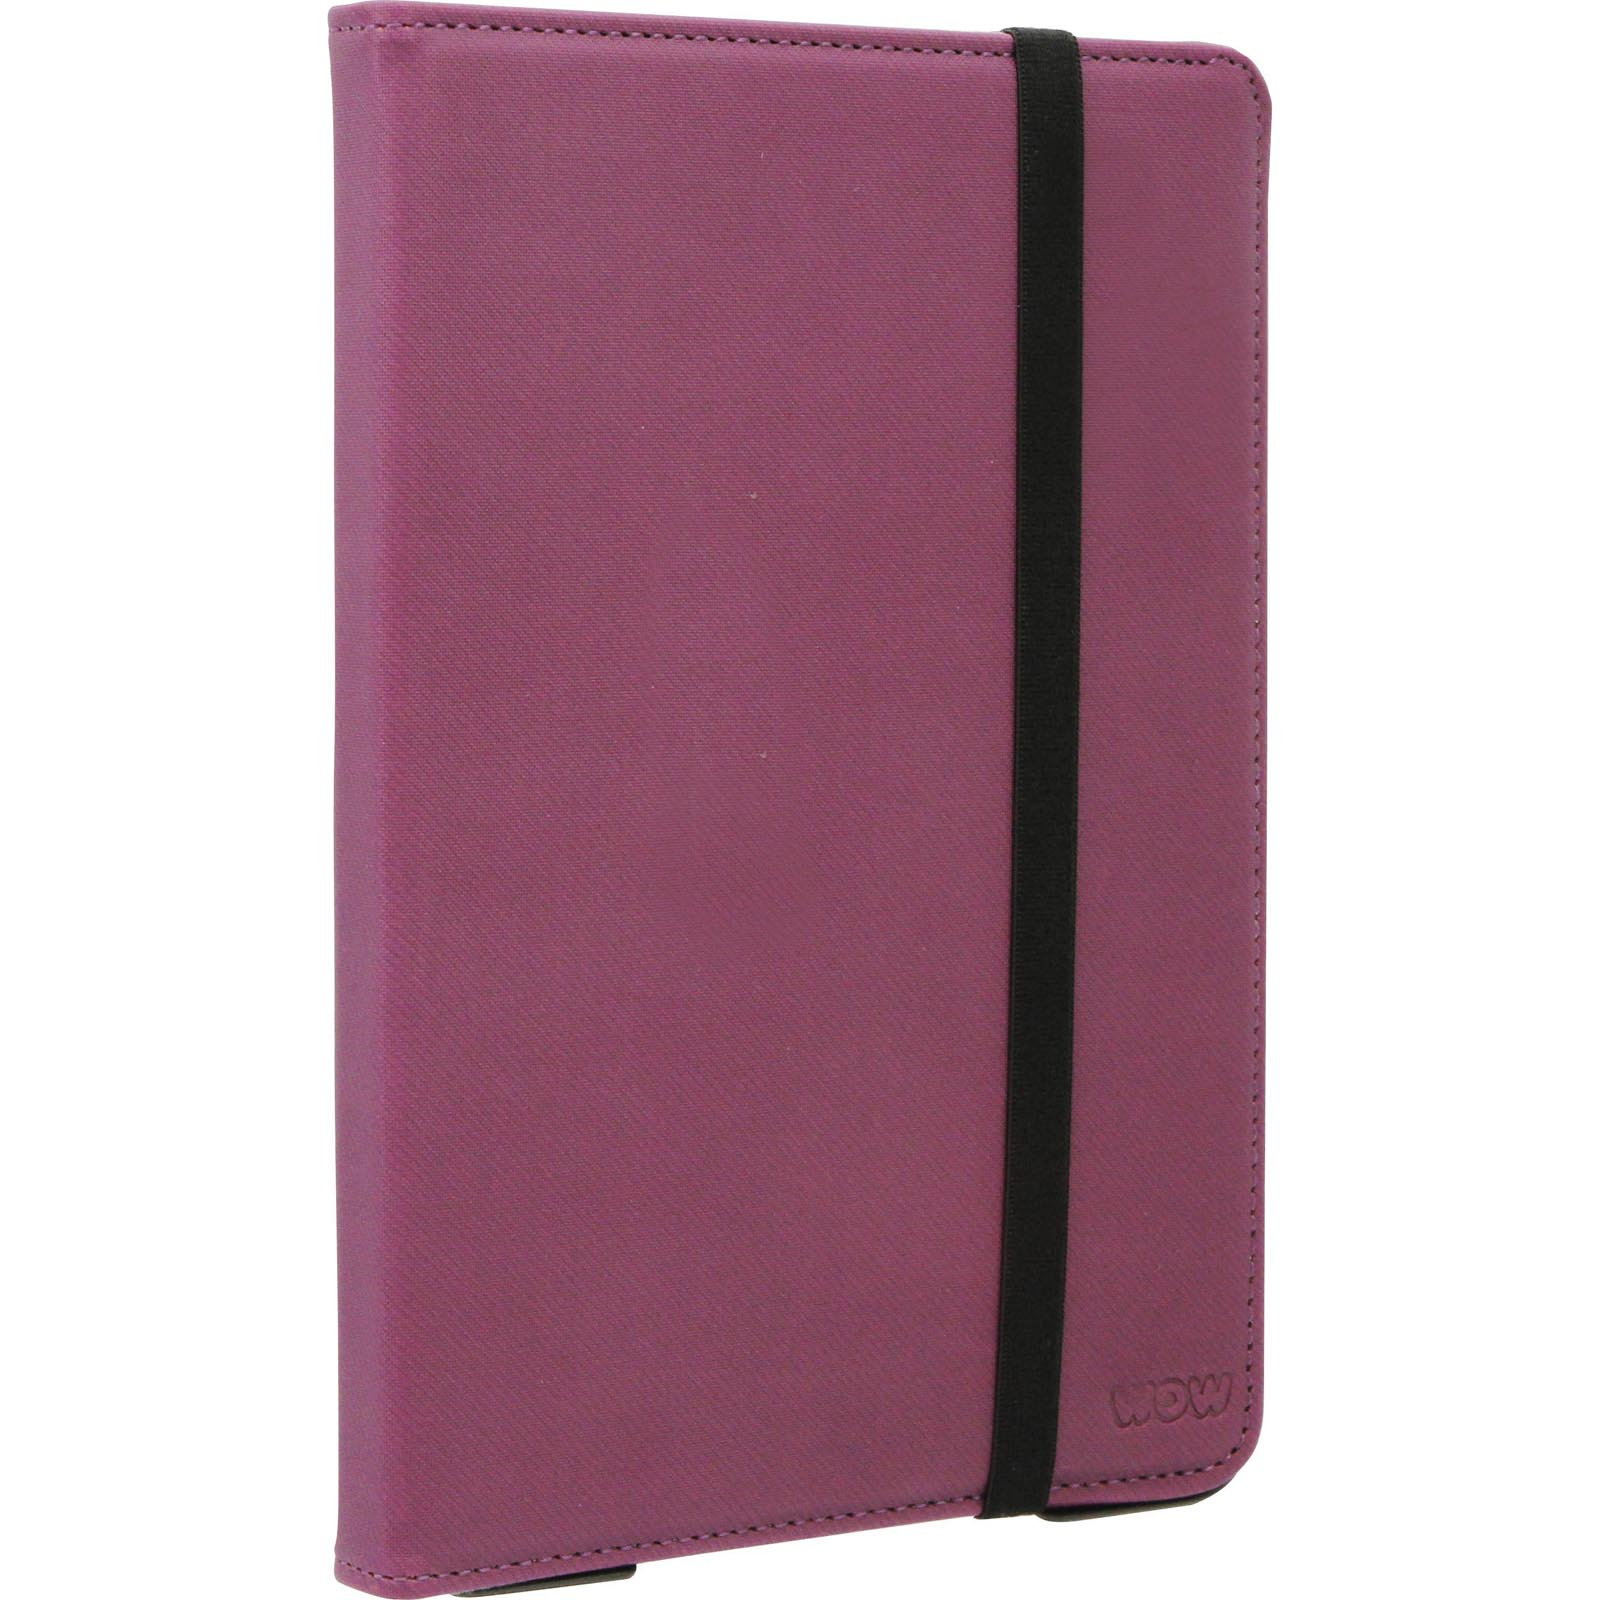 WOW Protective Case for iPad Mini - Purple